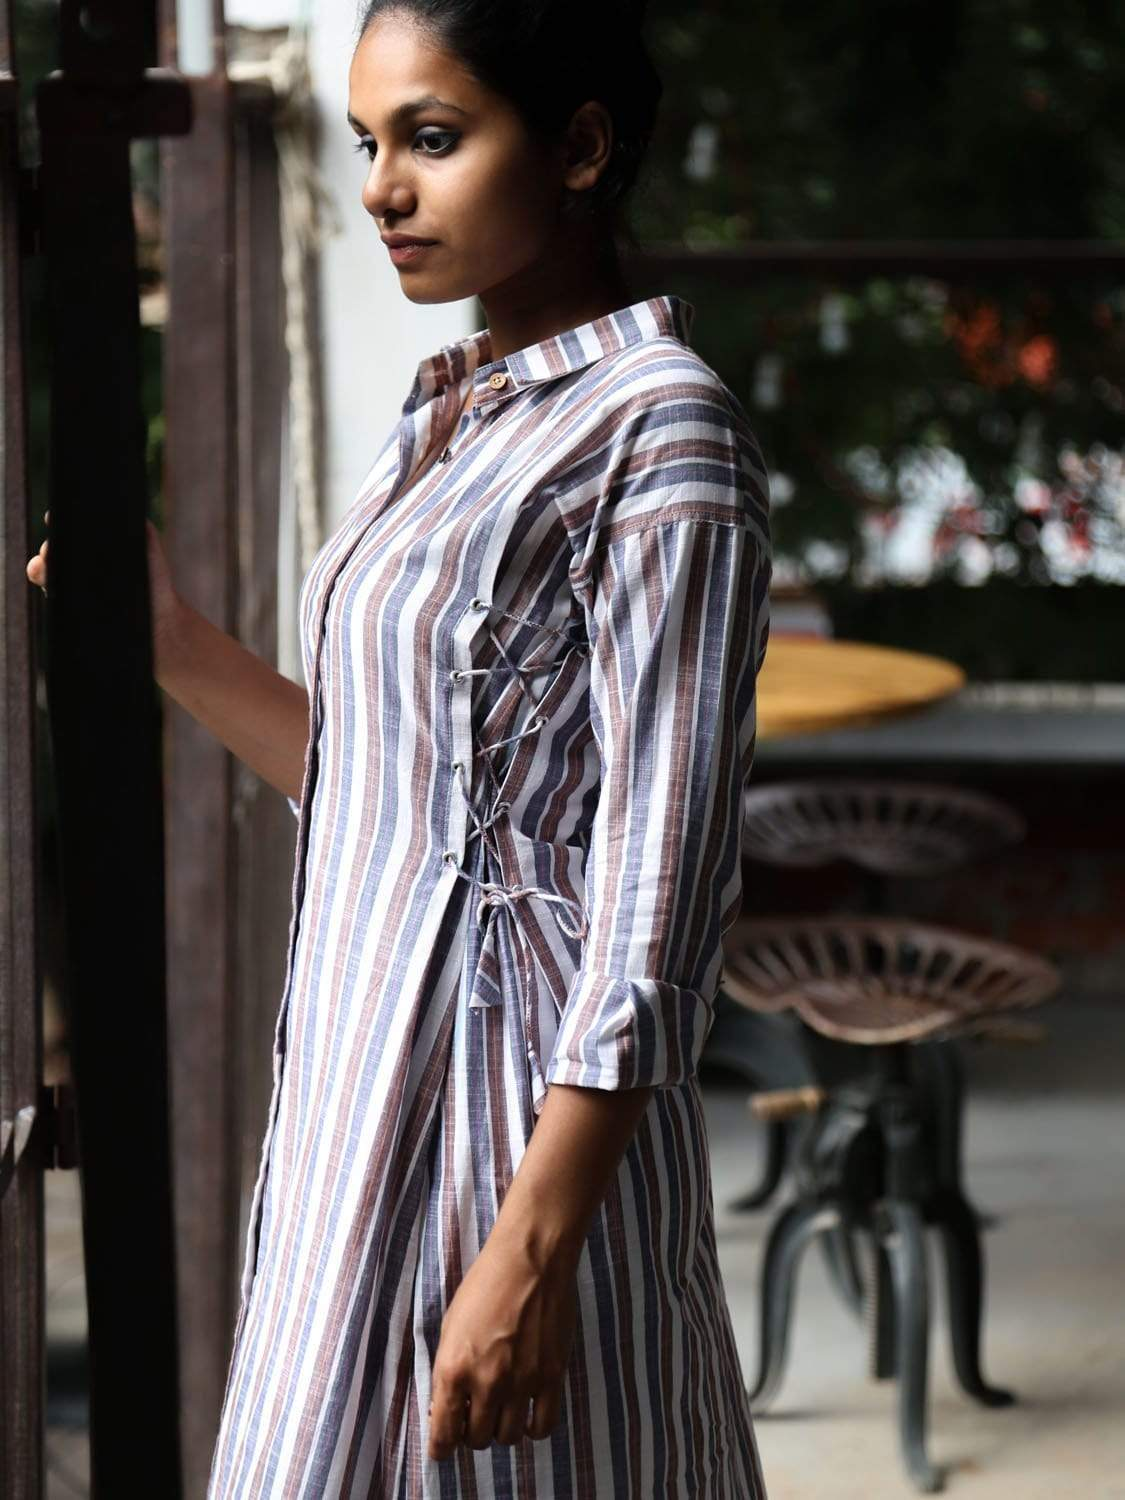 Blue and Red PikaLove Organic Cotton Stripped Shirt Dress FNG-MB-SSD-016